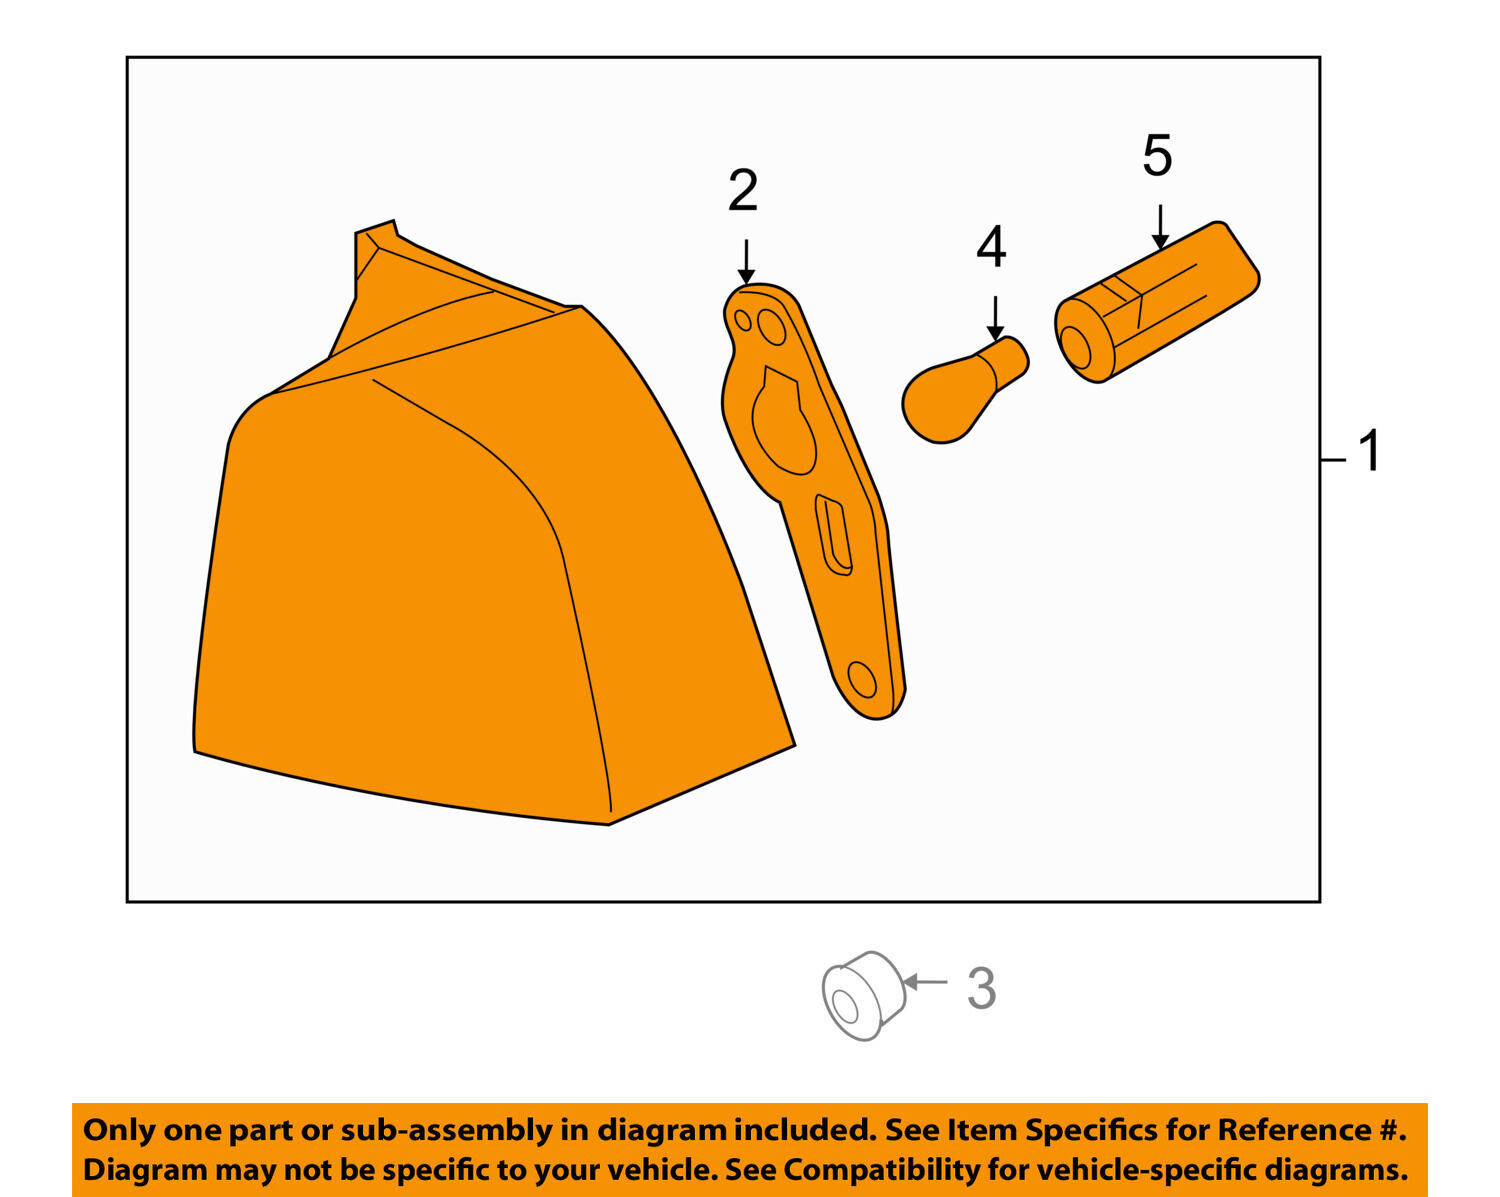 Volvo Oem 08 13 Xc70 Taillight Tail Light Lamp Assy Left 31395072 V70 Wiring Diagram 1 Of 2only Available